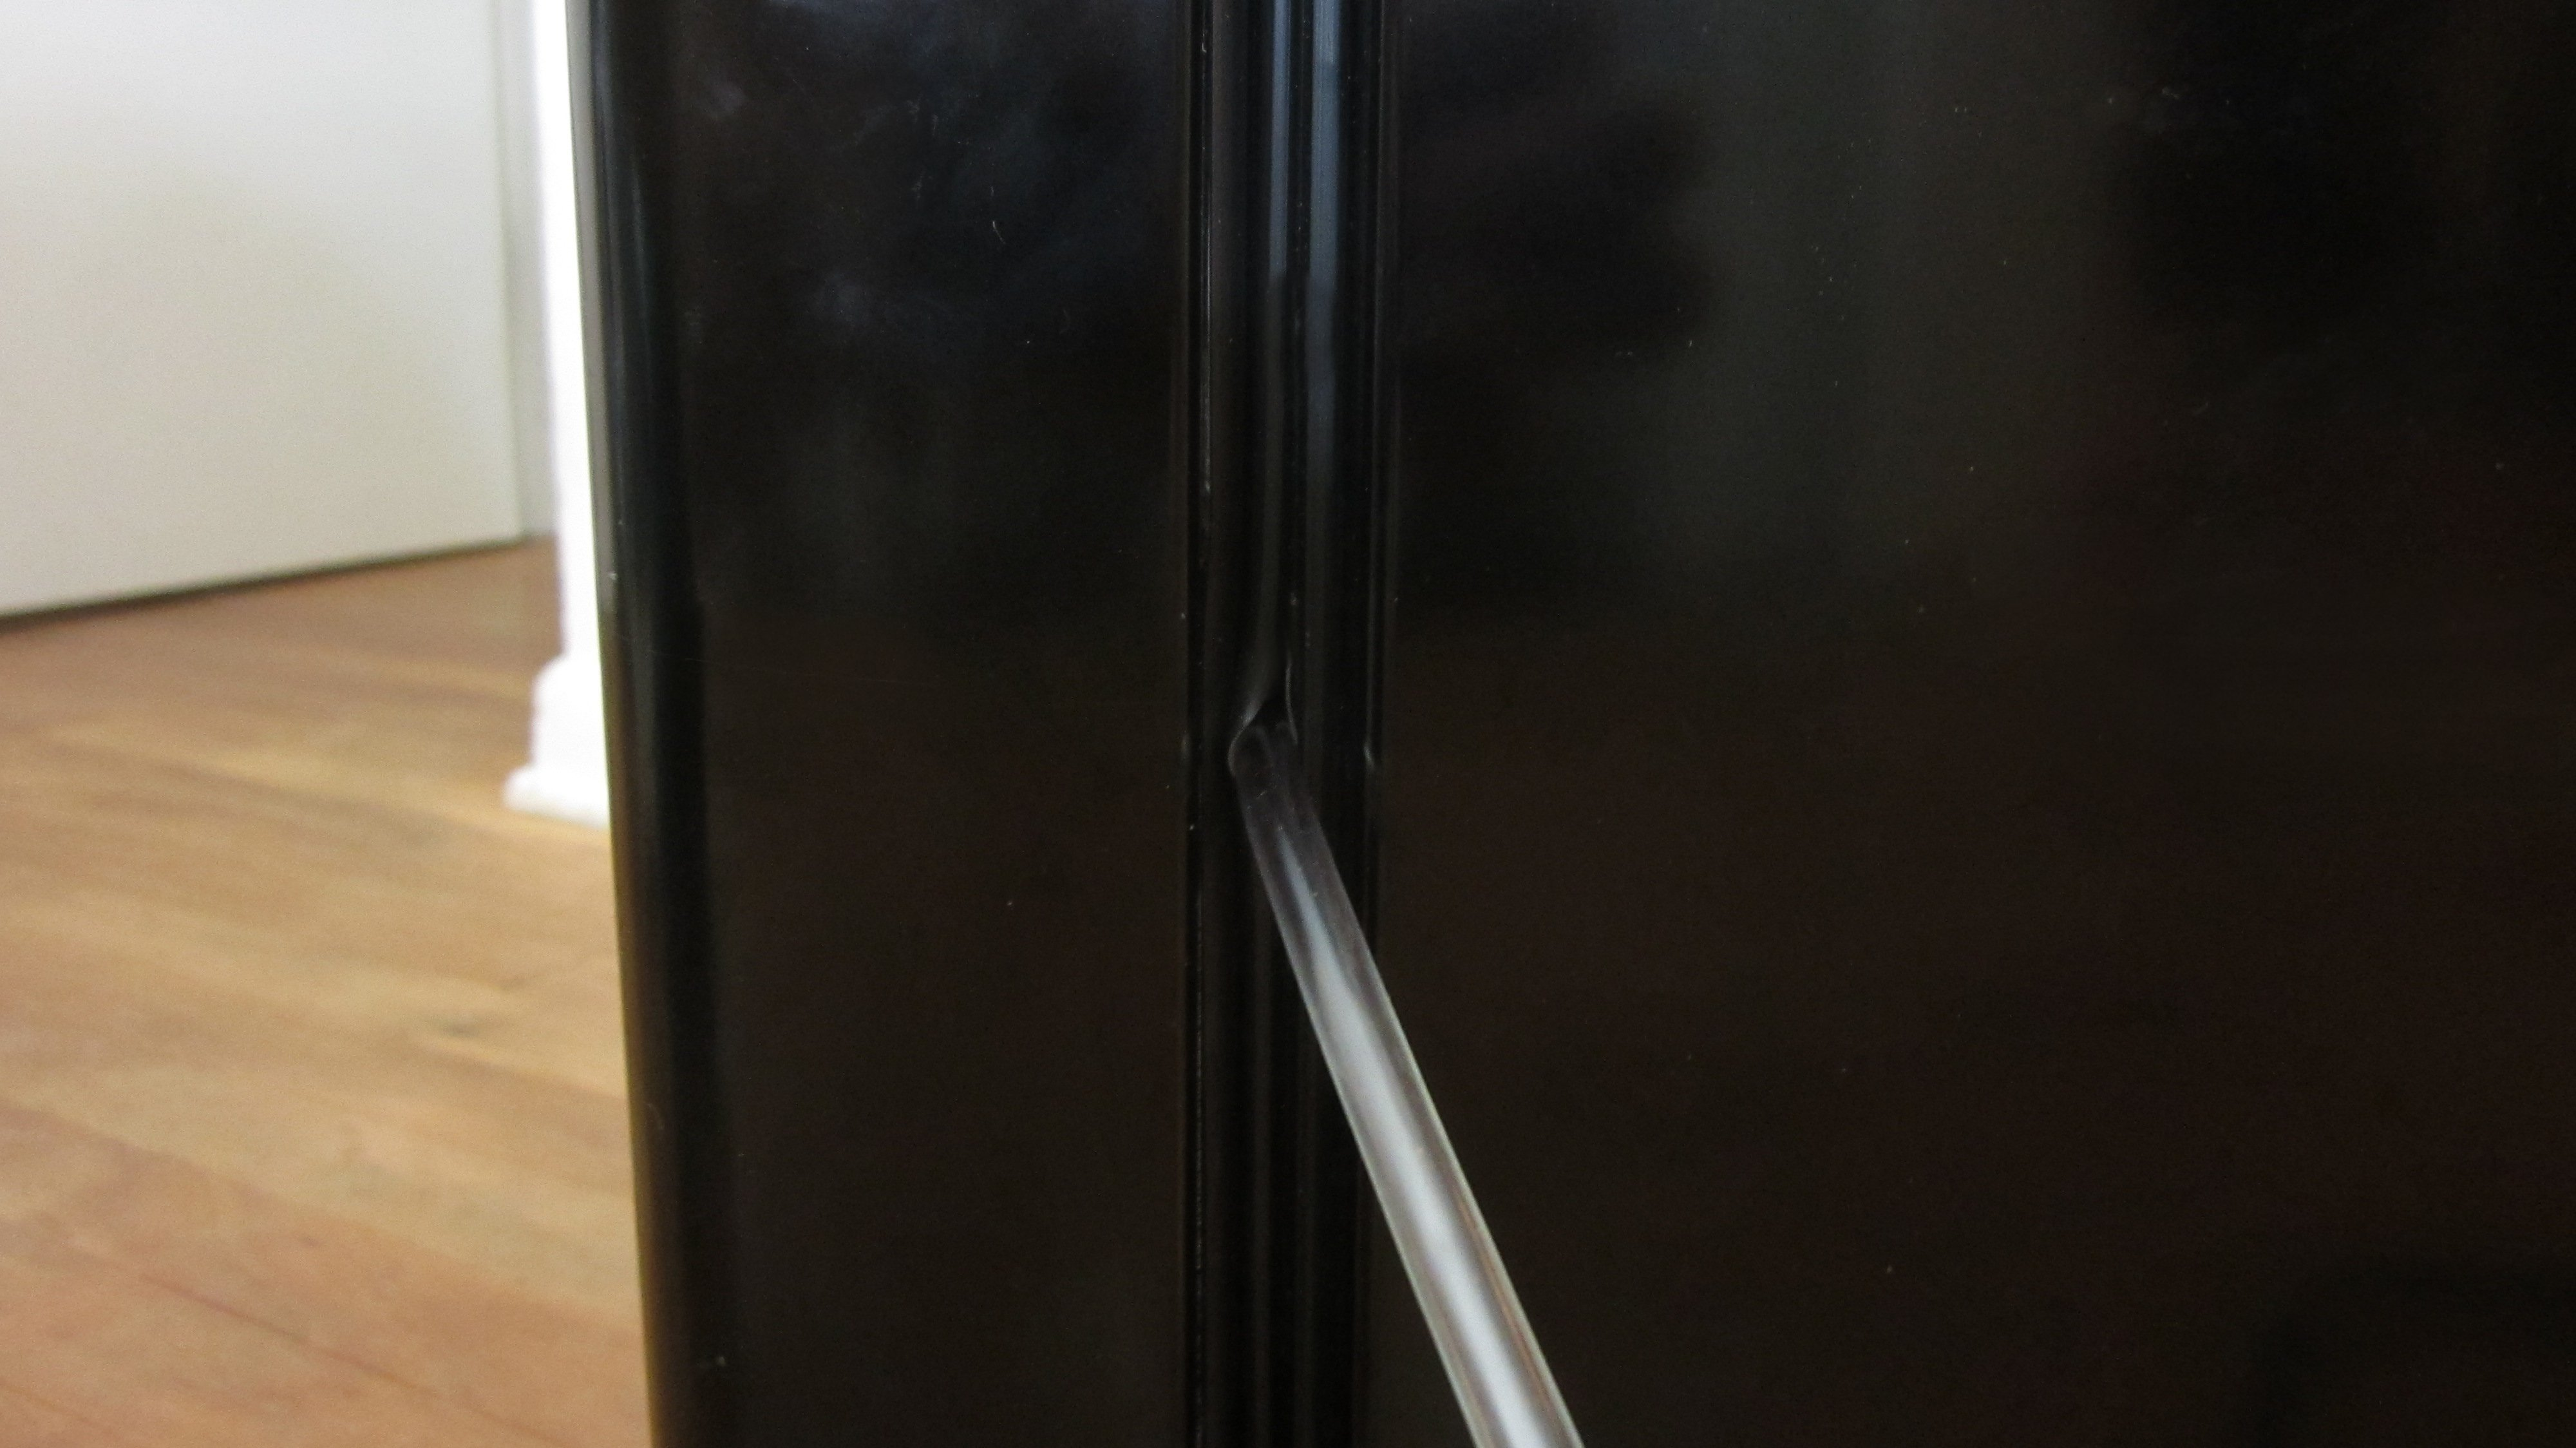 Picture of Cut Two Holes in the Side of the Refrigerator